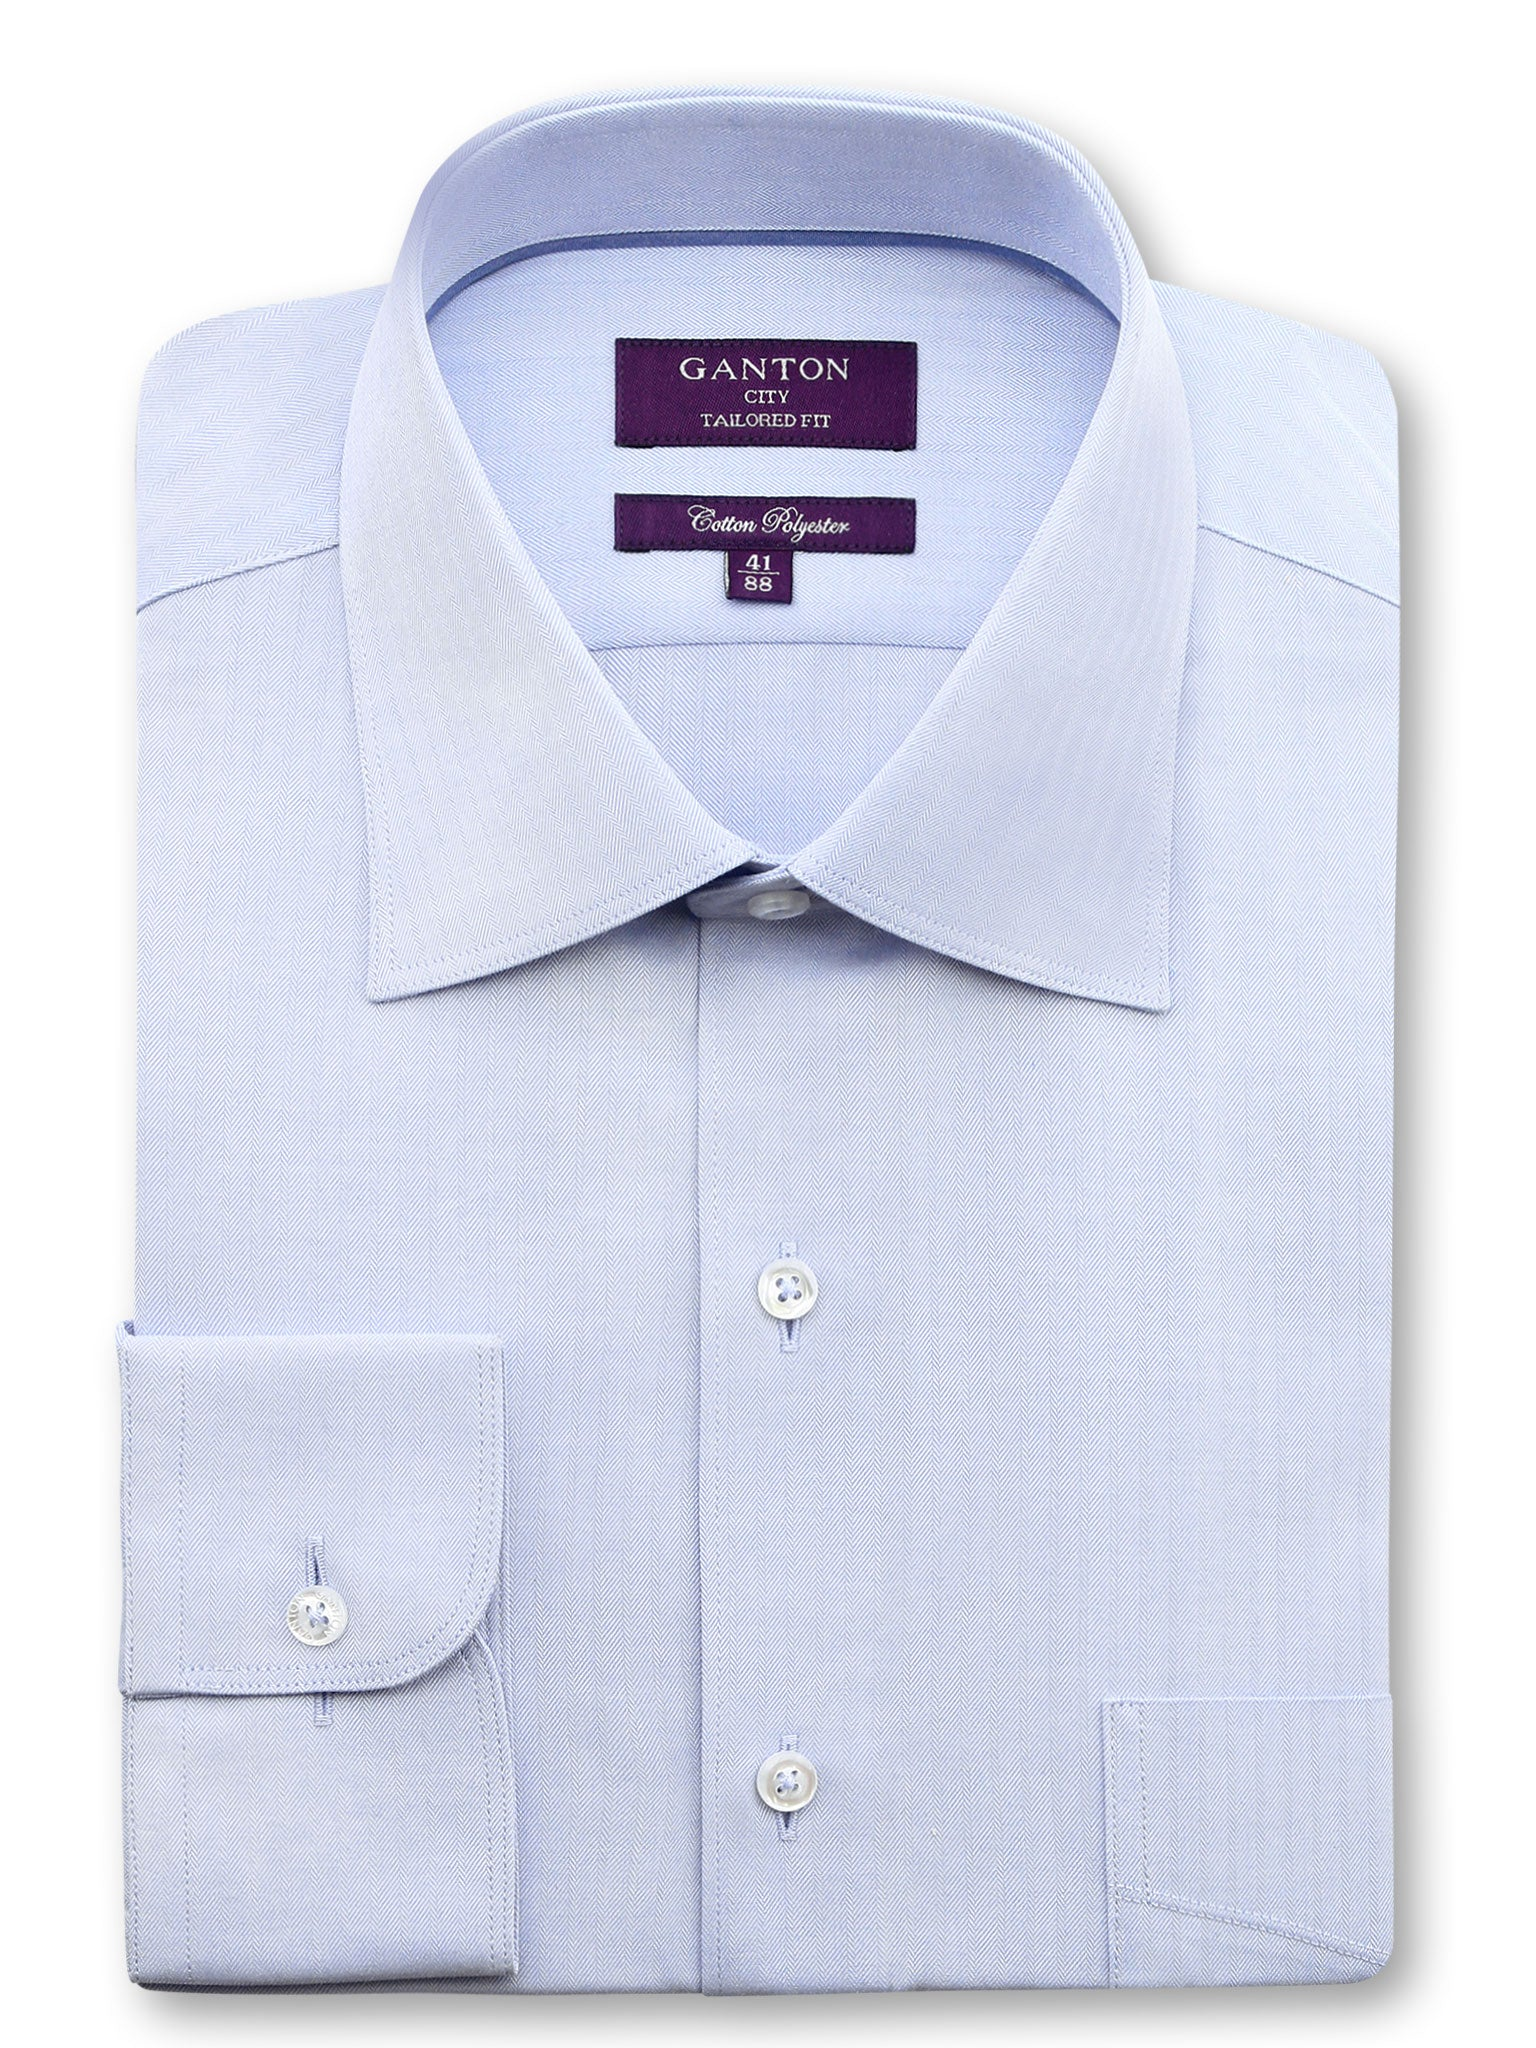 All Light Blue Textured Tailored Fit Wayne Cotton Polyester Shirt